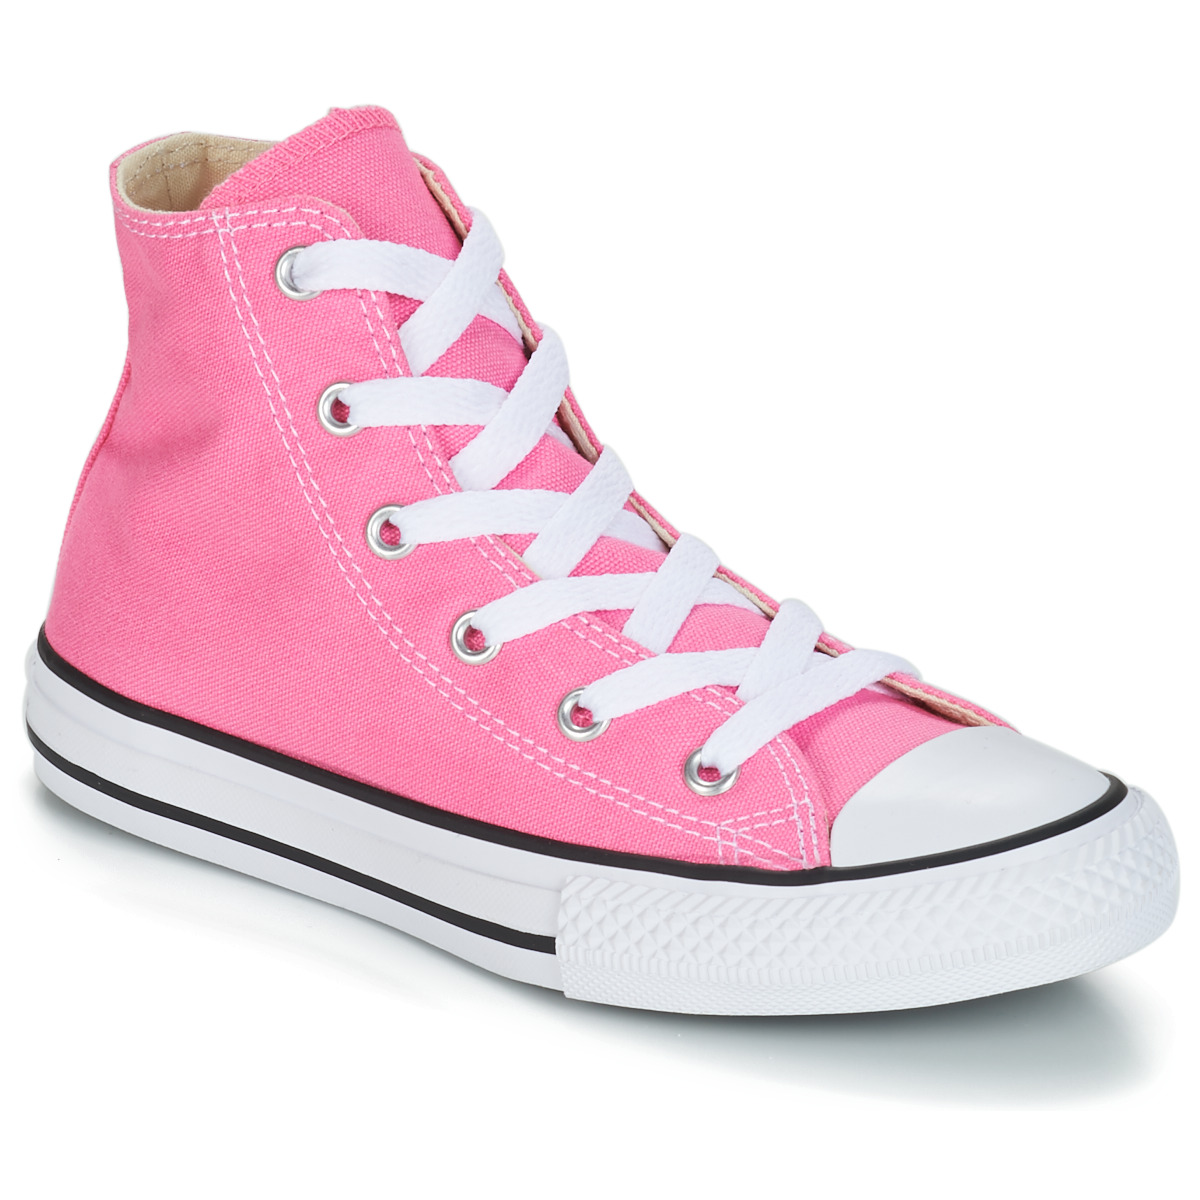 a91bf9e3e7aa Converse ALL STAR HI Pink Shoes Hi top trainers Child chic ...